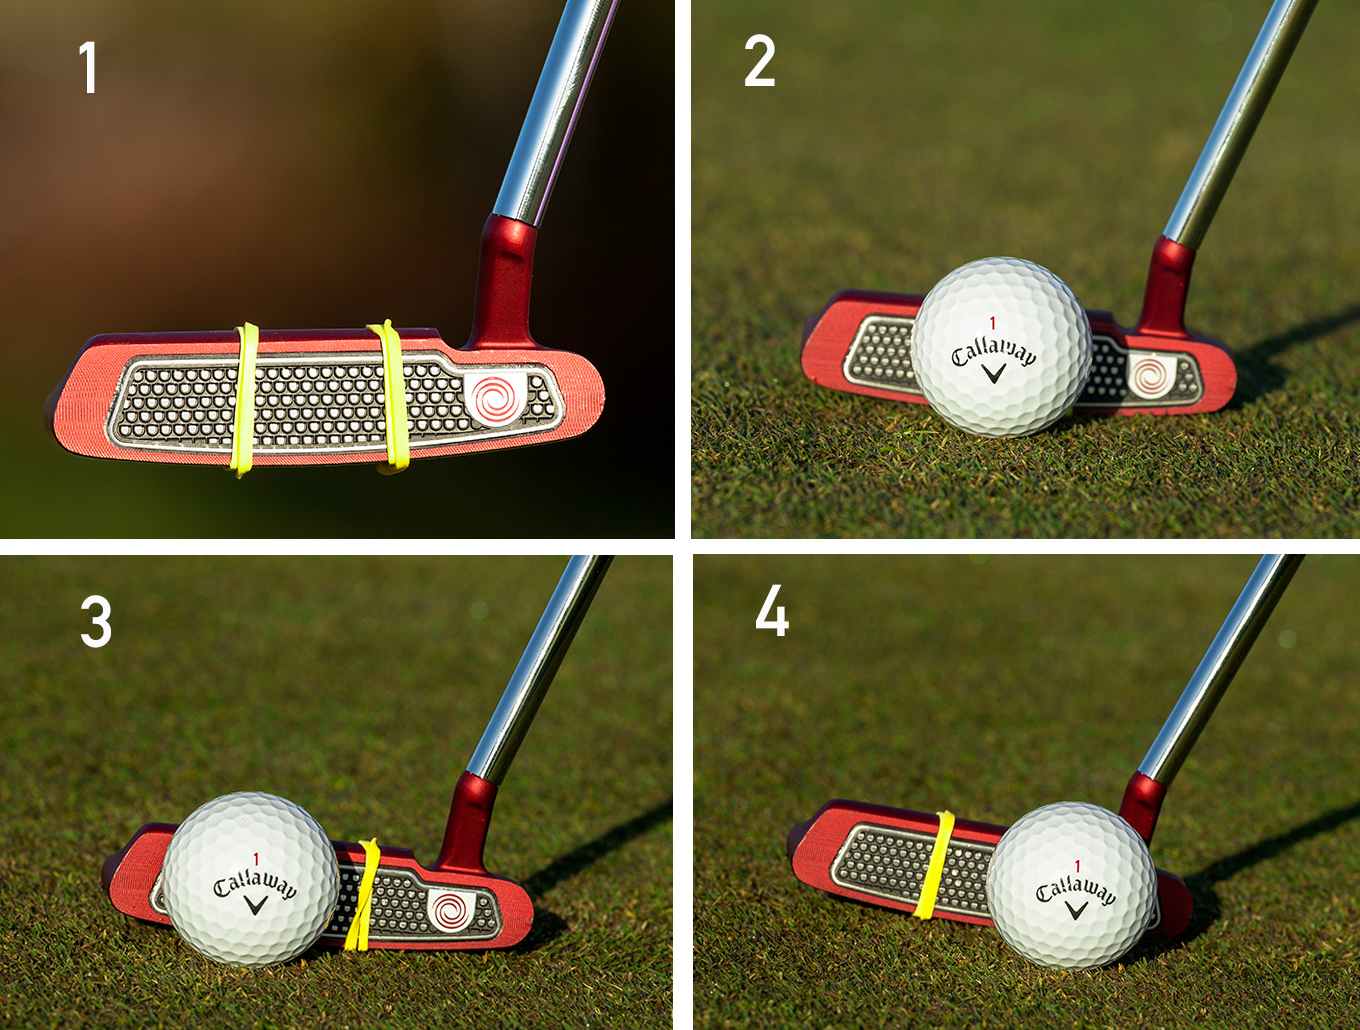 center of the club face 1-4